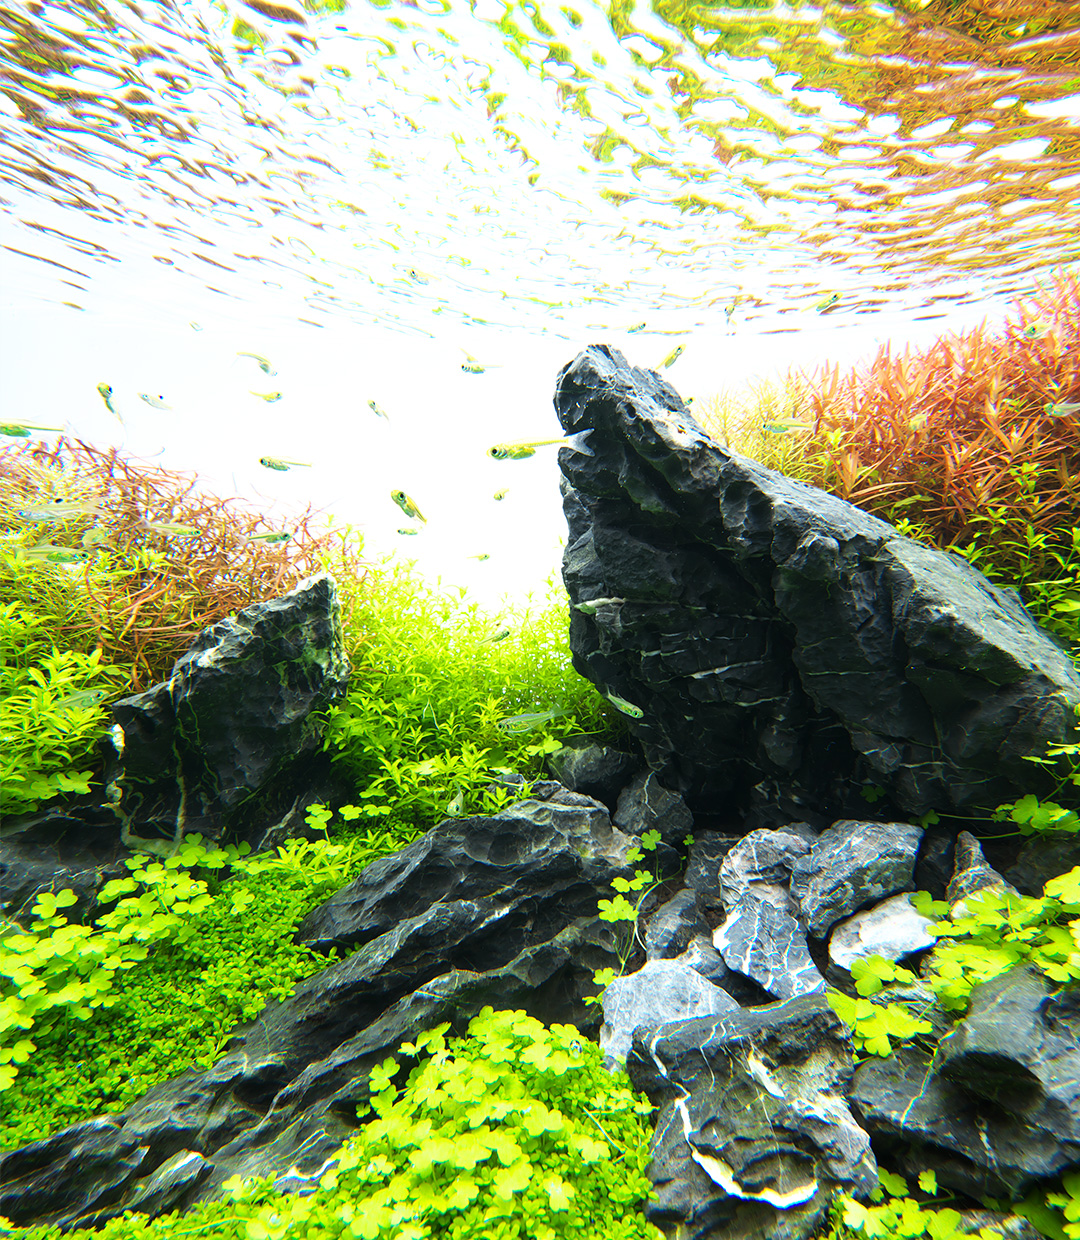 NATURE IN THE GLASS 'Gentle Scenery with Stones'